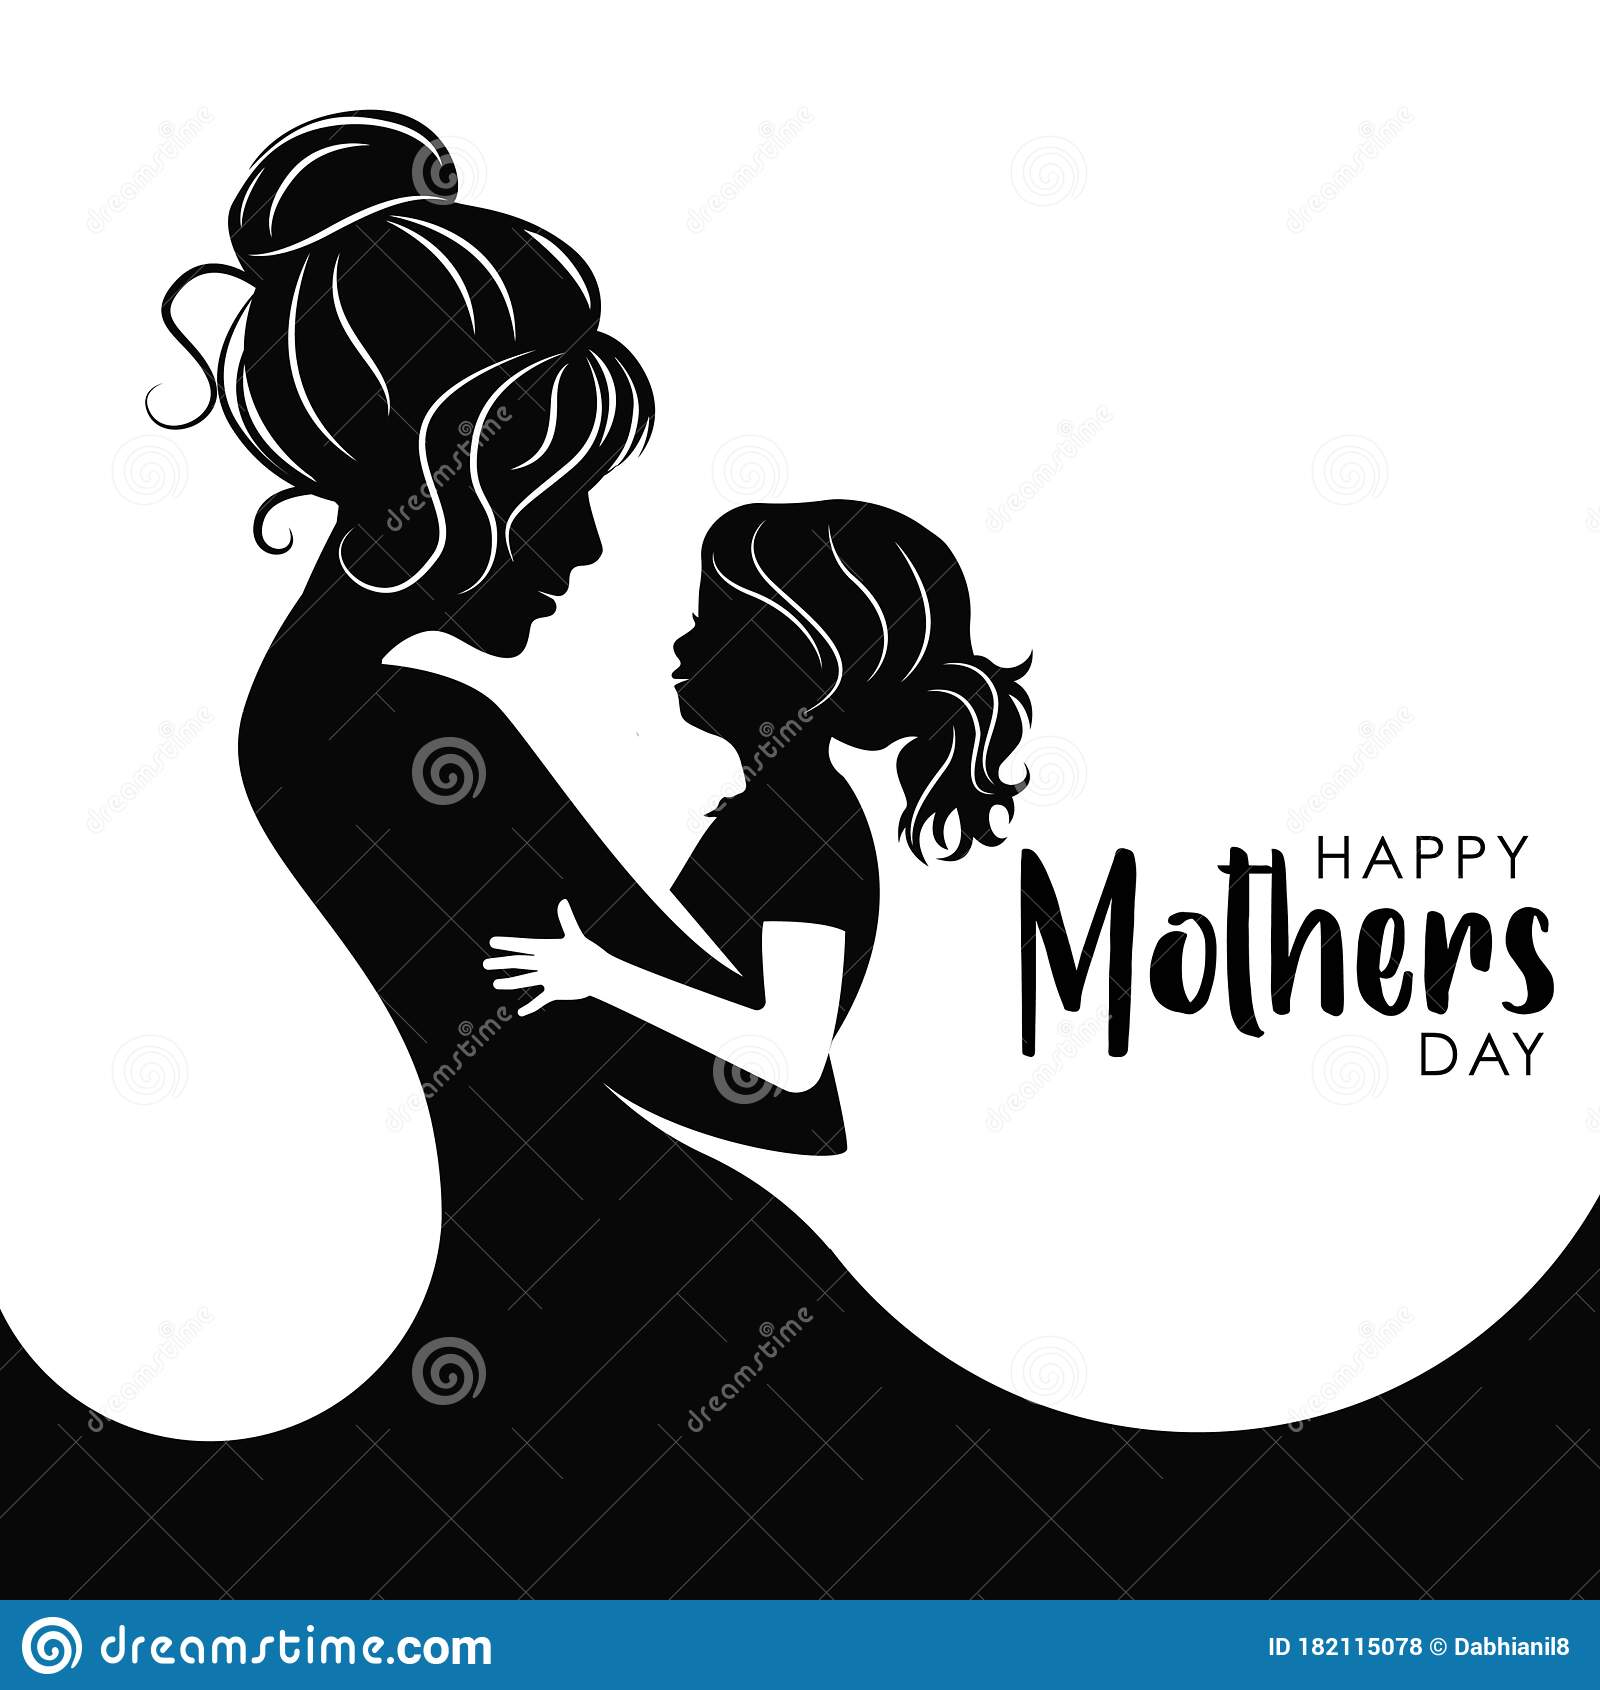 mothers-day-9